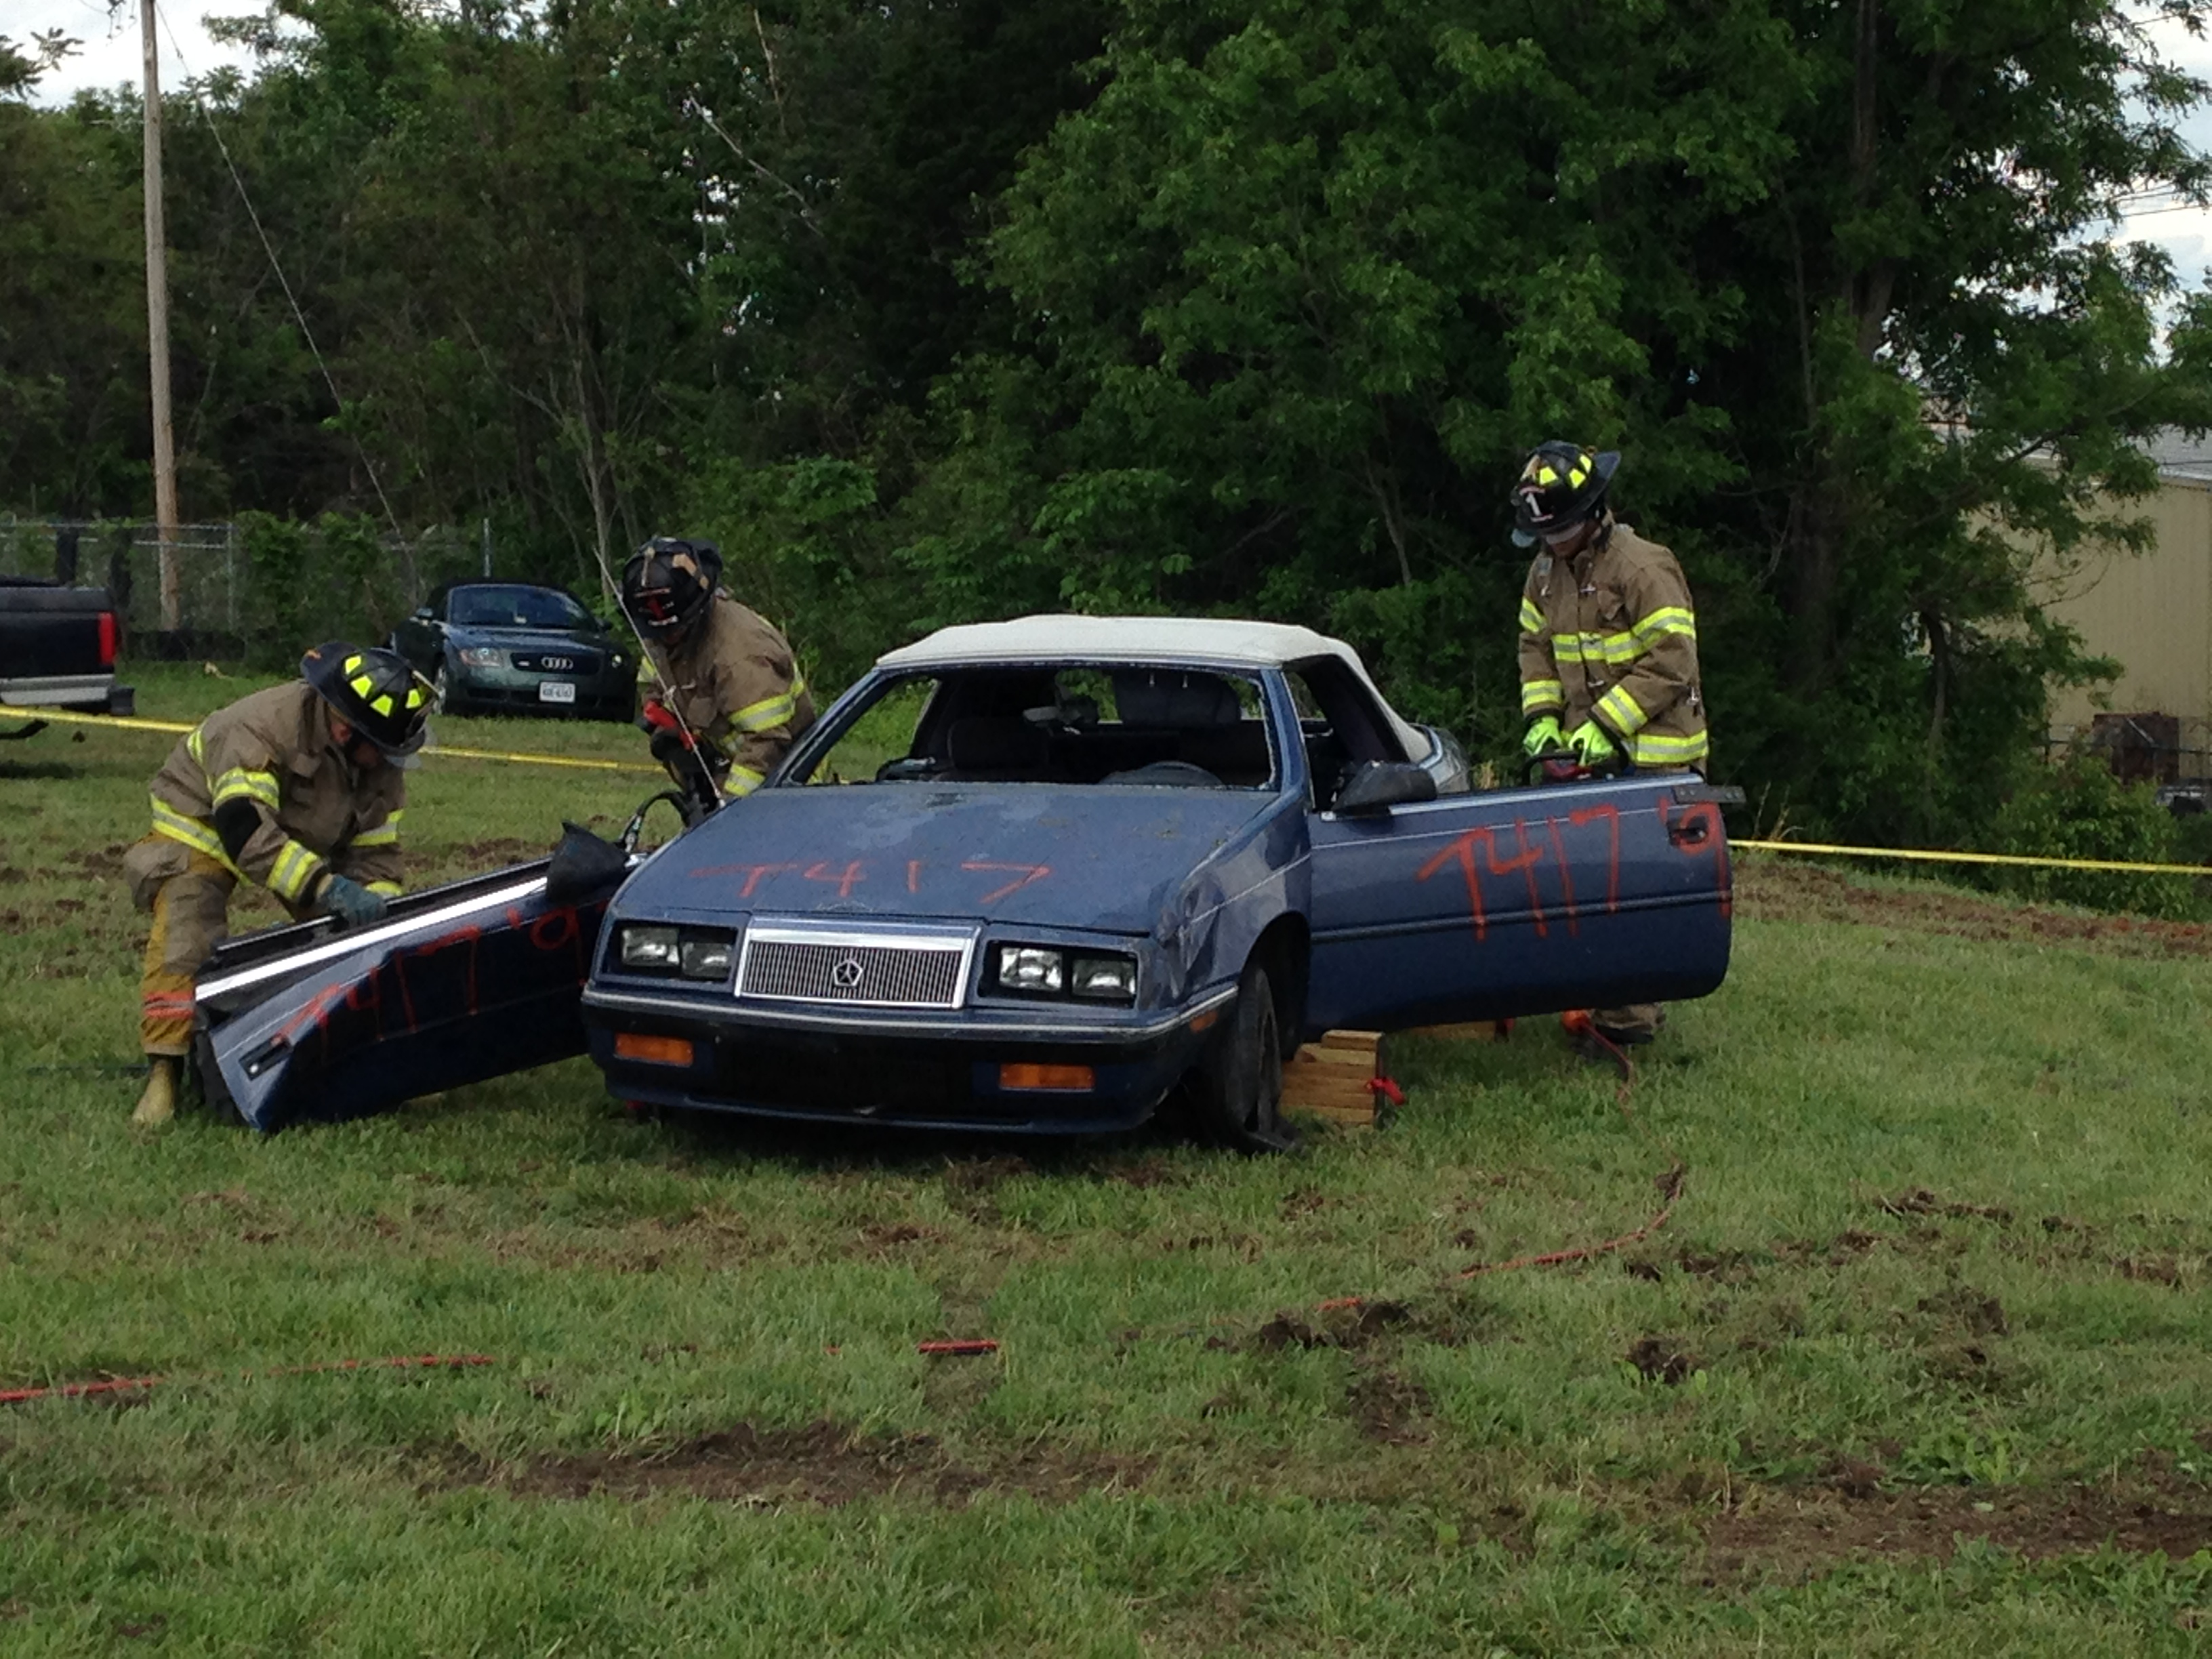 Using the Jaws of Life to remove the doors and top of the car.